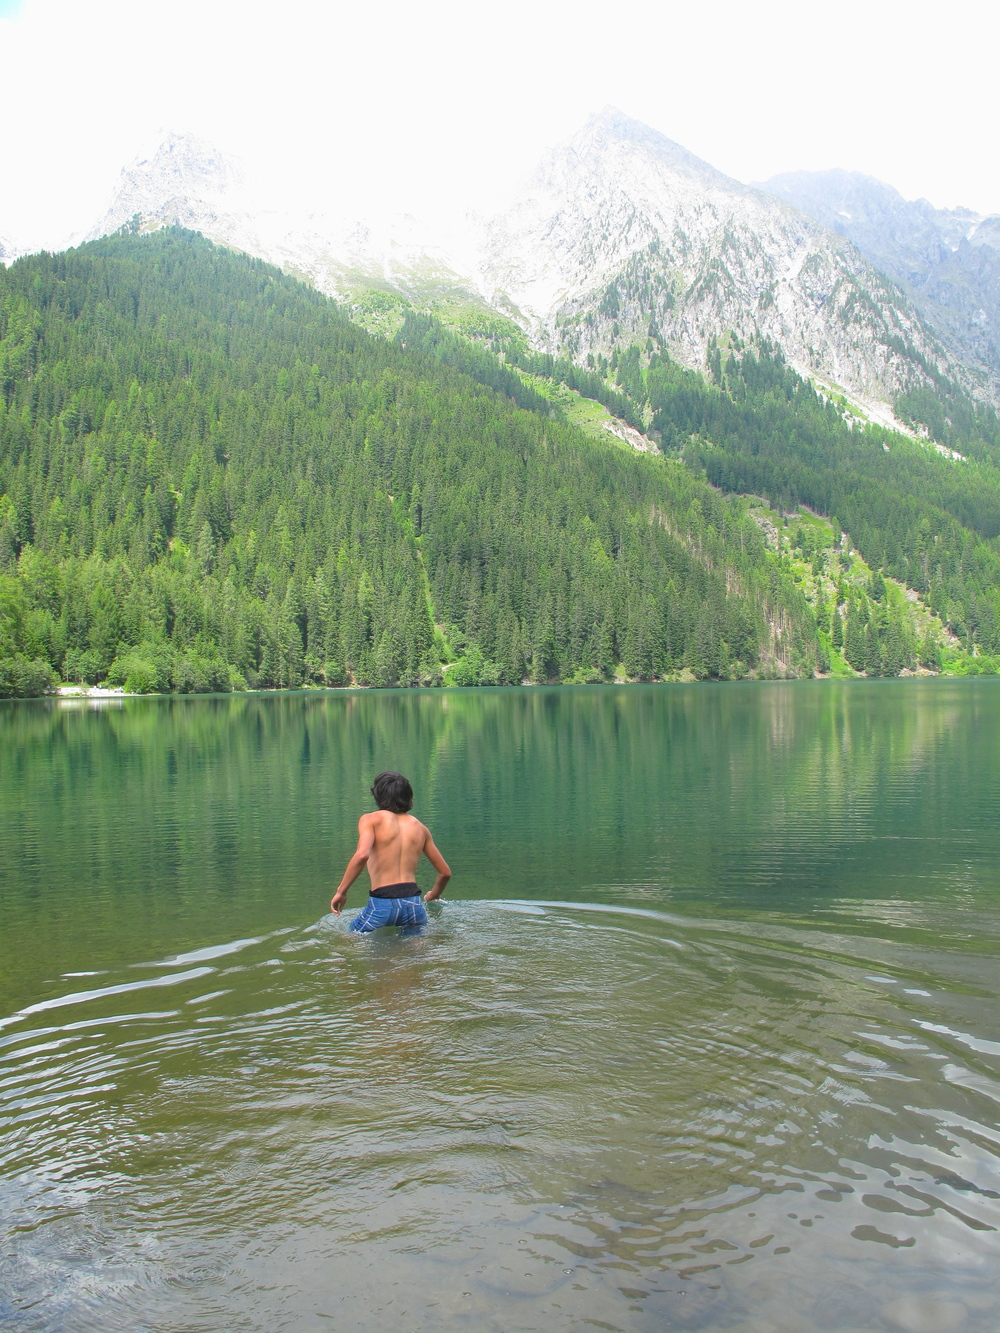 Oliver swimming in a snowmelt lake, with turquoise green waters, in Austria.